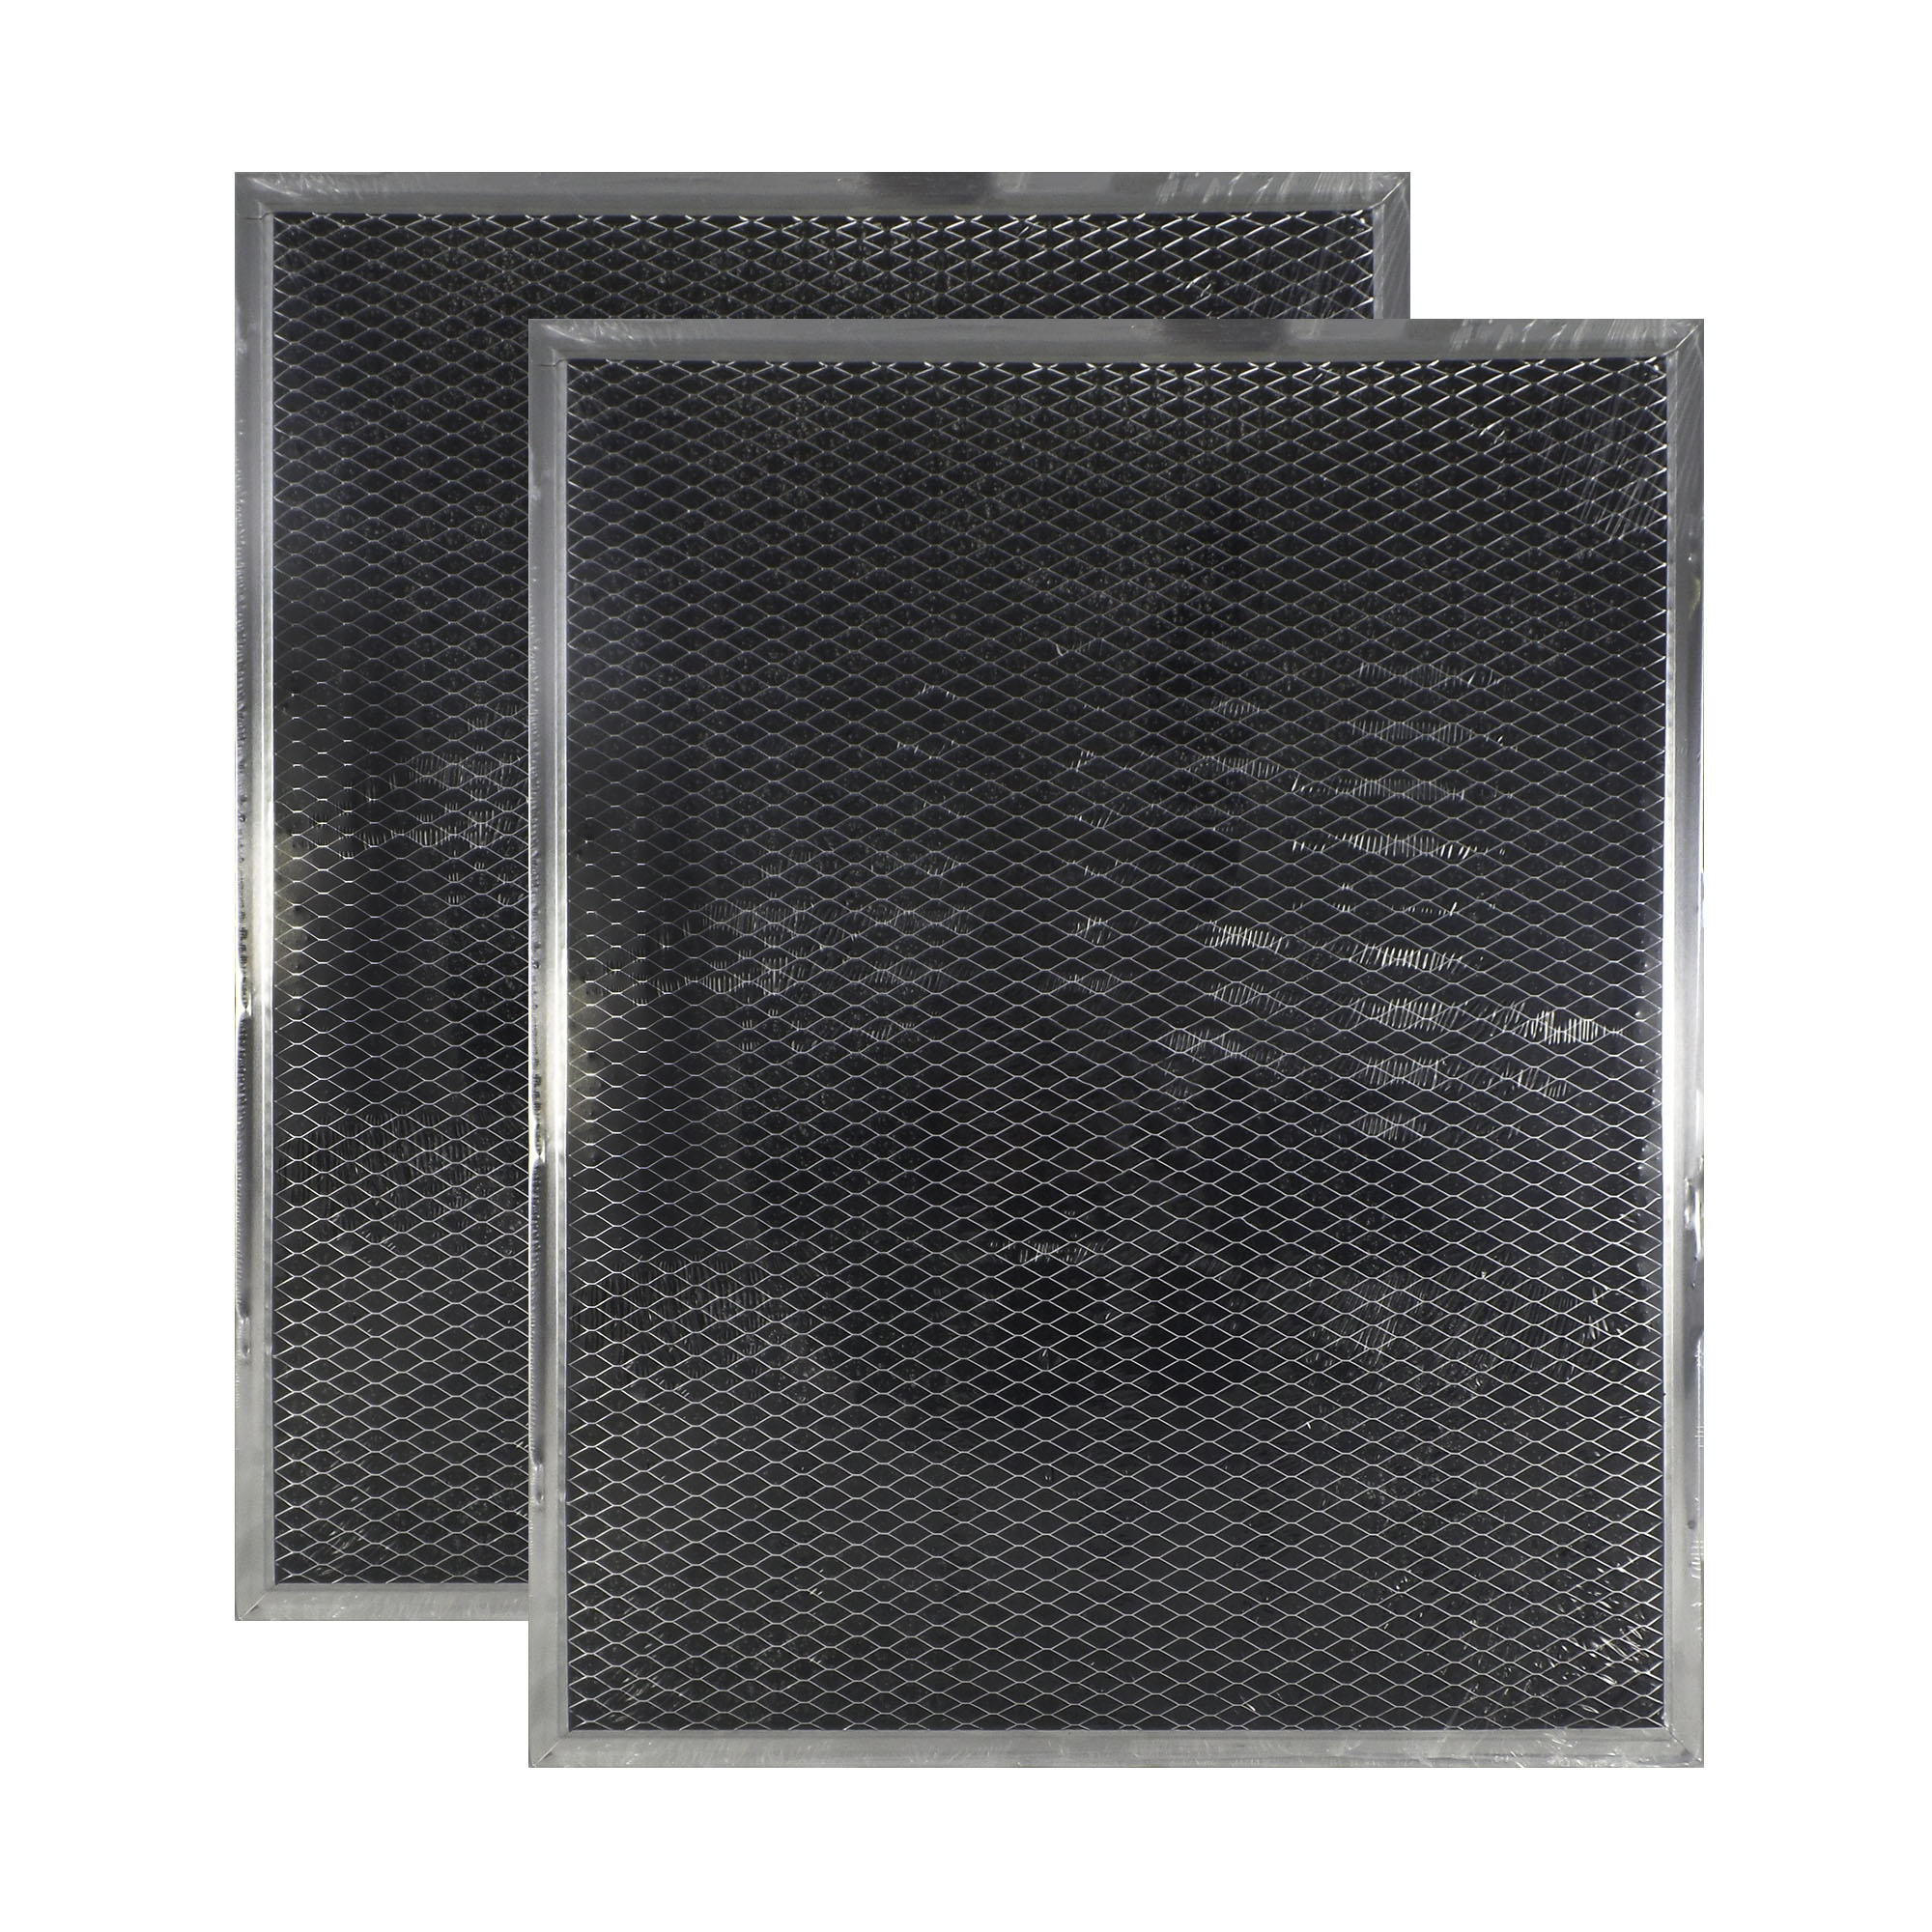 2 PACK 874027 GE Range Hood Charcoal Carbon Filter Replacements by Air Filter...